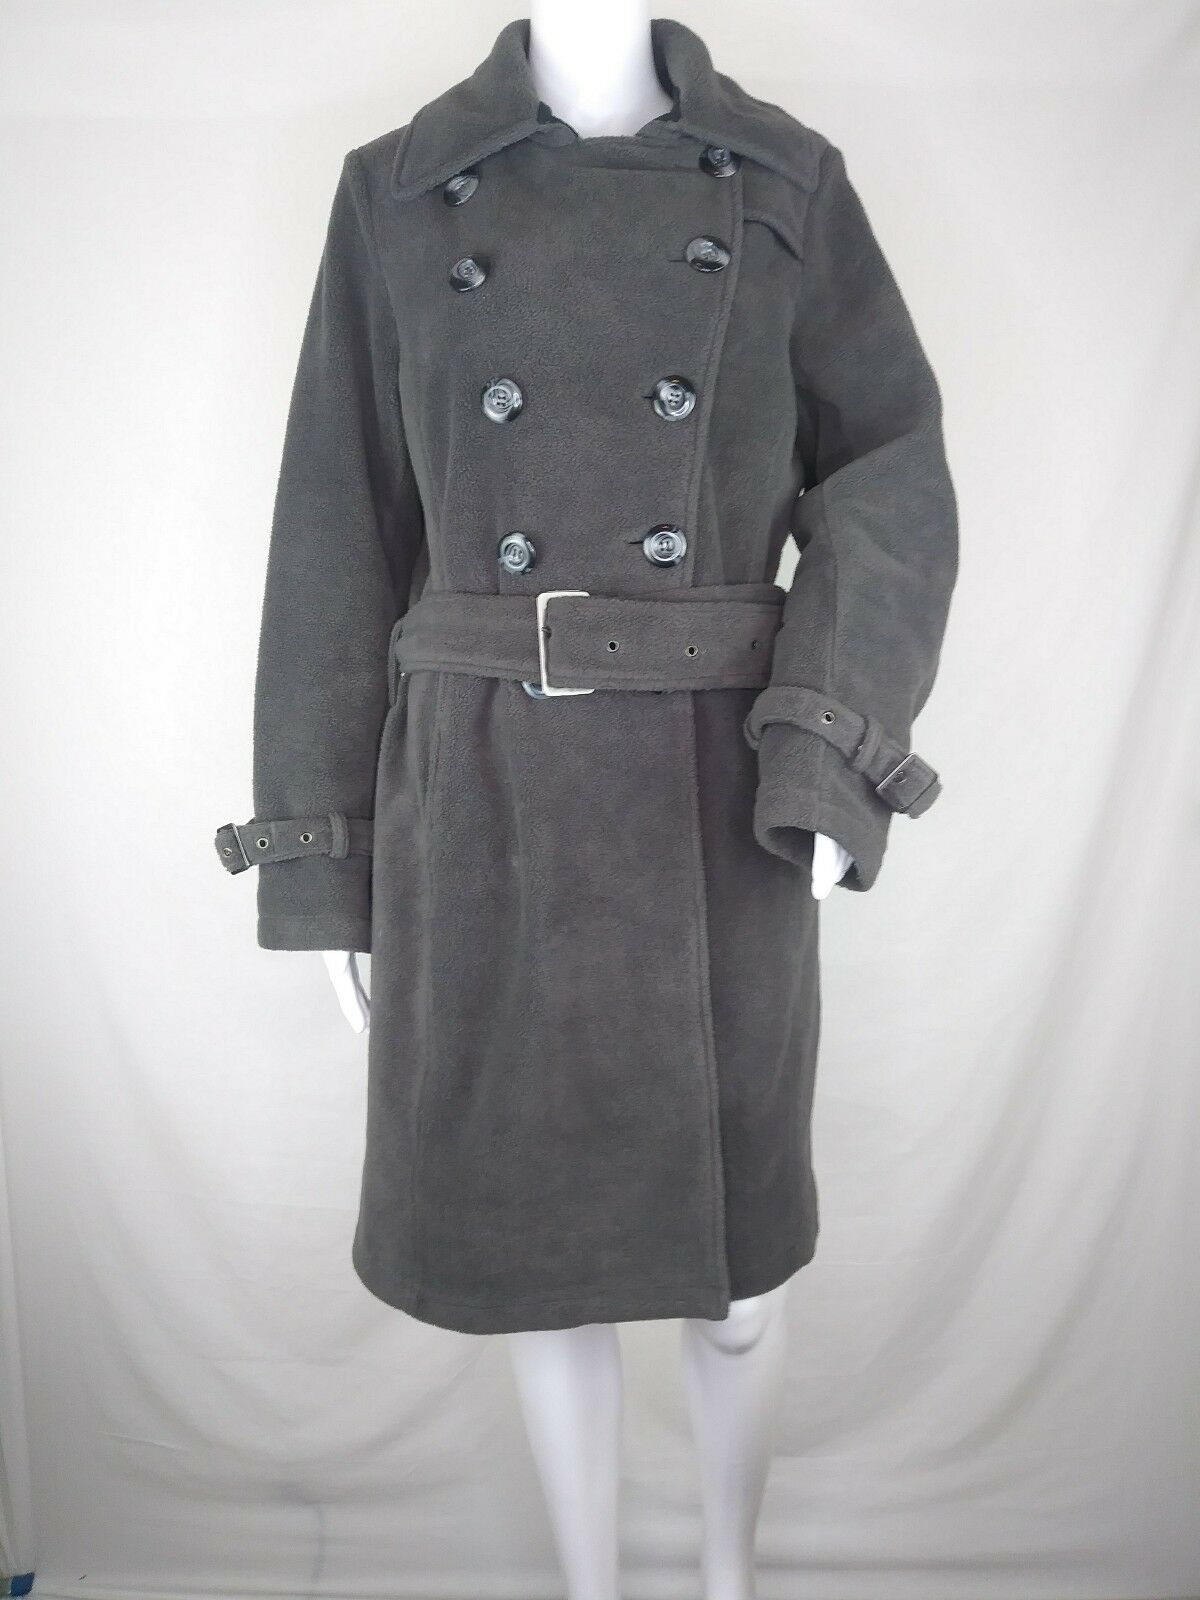 Kial Womens coat medium fleece doubled breasted 3 4 peacoat  grey belted